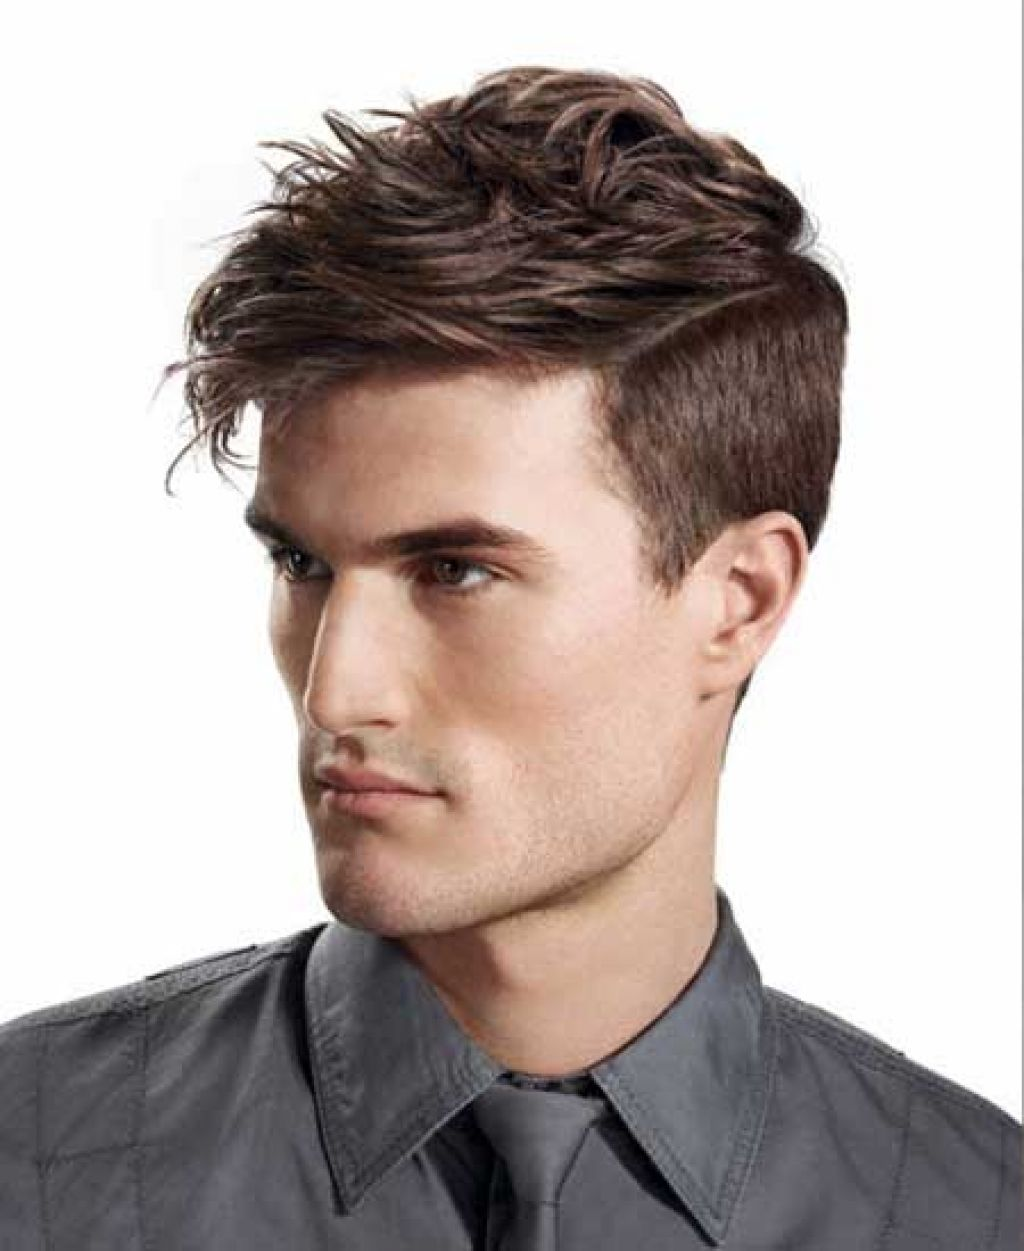 boys hairstyles ideas to look super cool | for the love of